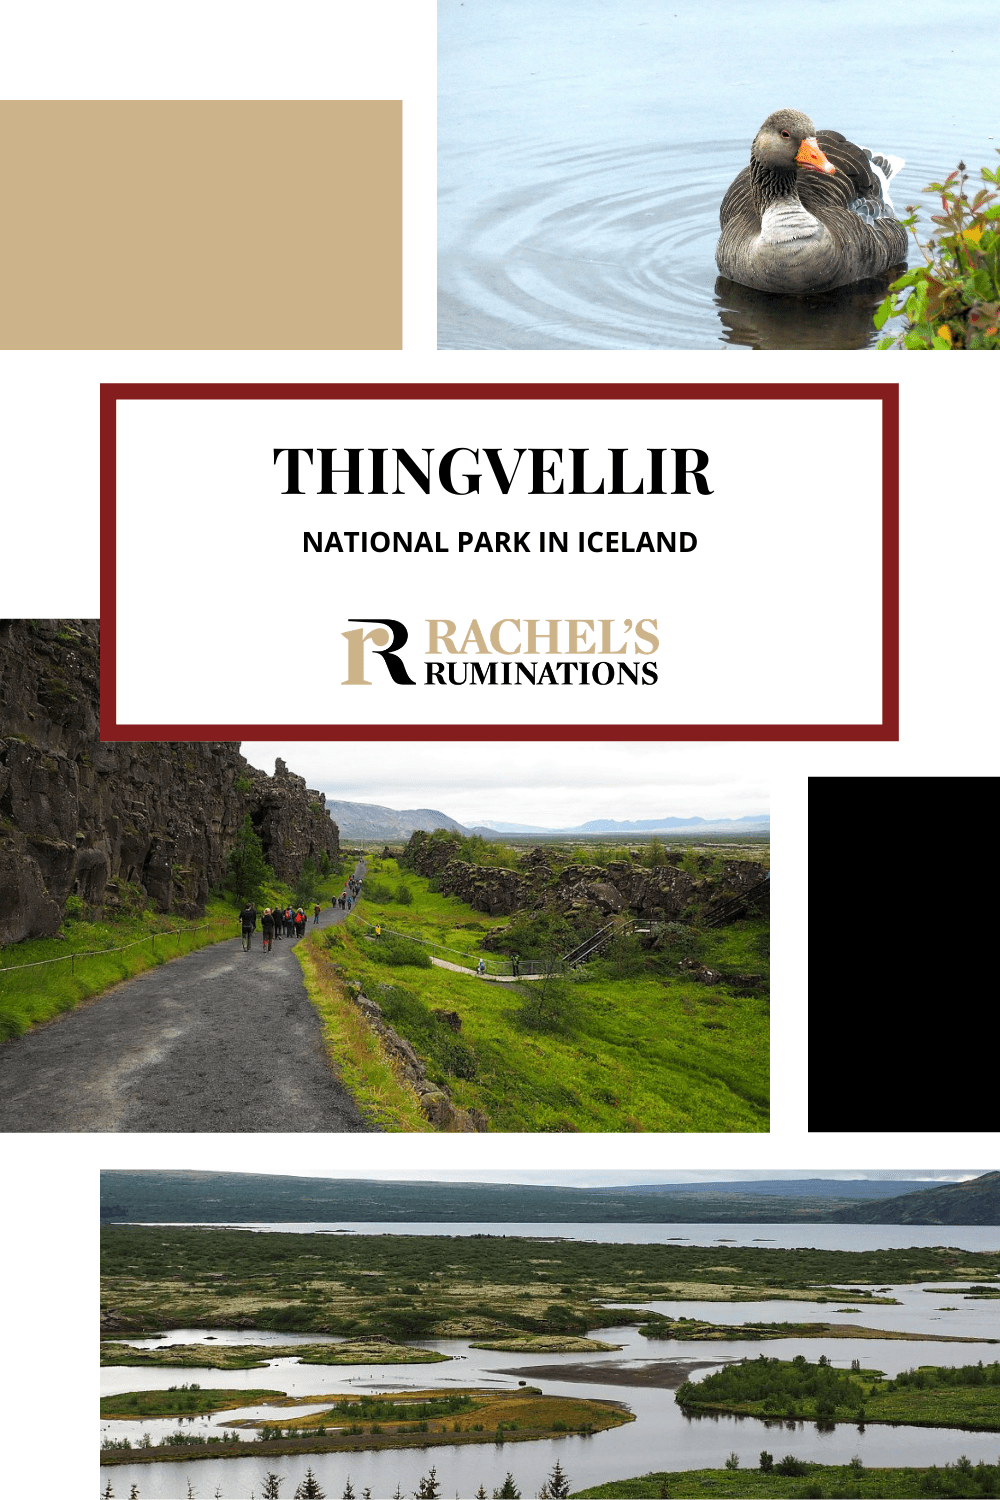 7 Things to do in Thingvellir National Park (properly: Þingvellir), a UNESCO-listed site with historical & geological significance for Iceland. Home of Iceland's first parliament and also the place where the Eurasian and North American tectonic plates meet on dry land! via @rachelsruminations